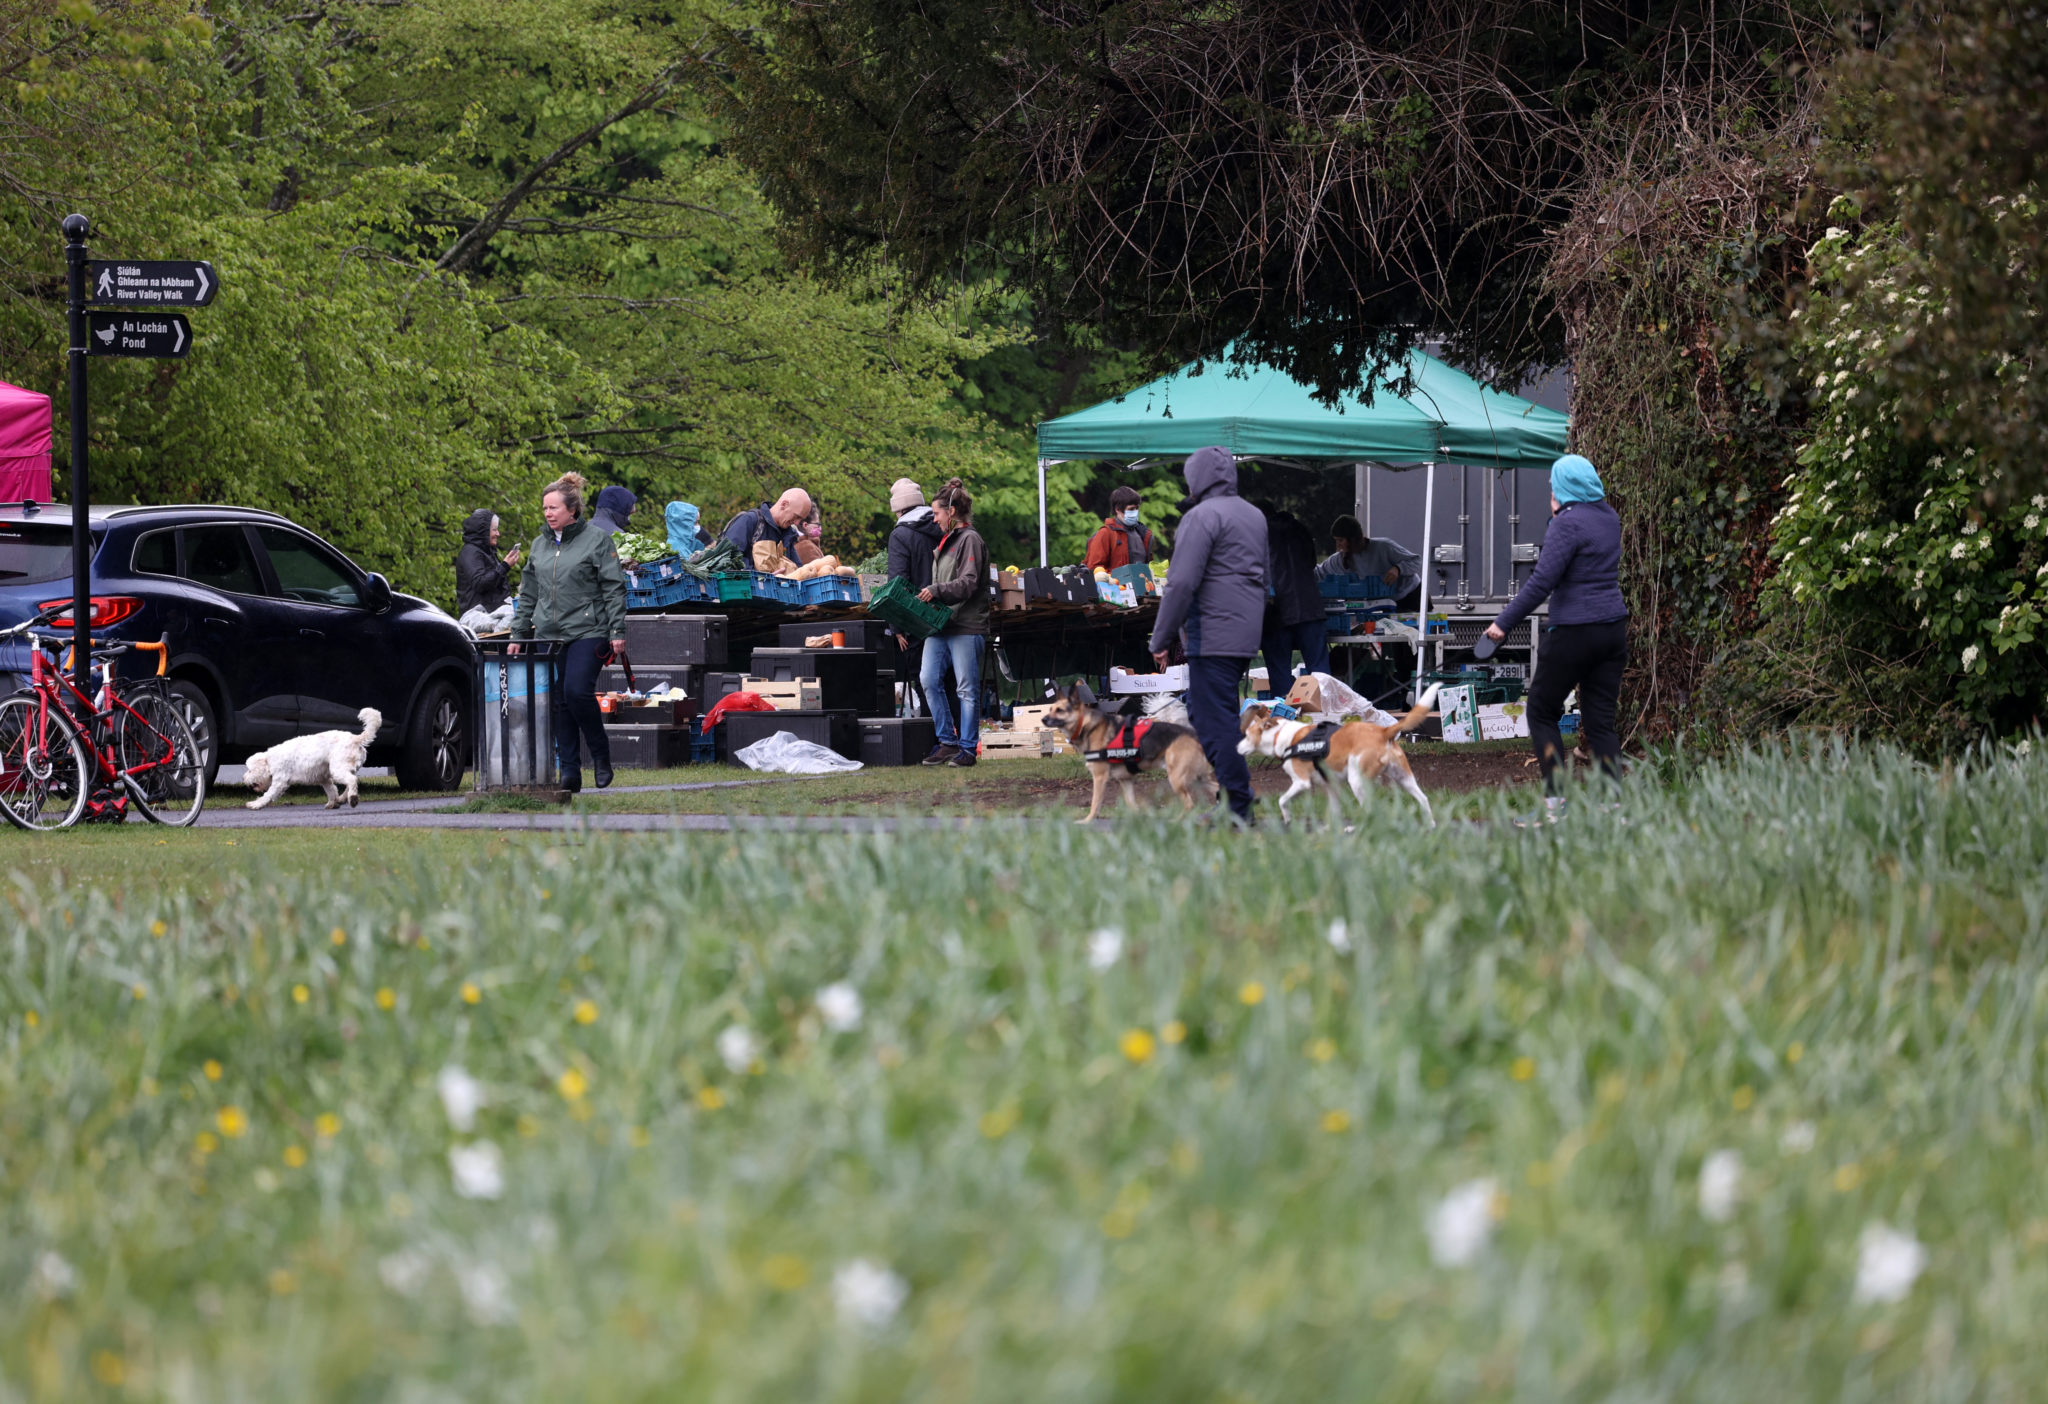 People enjoy shopping at the farmers market in St Annes Park in Dublin